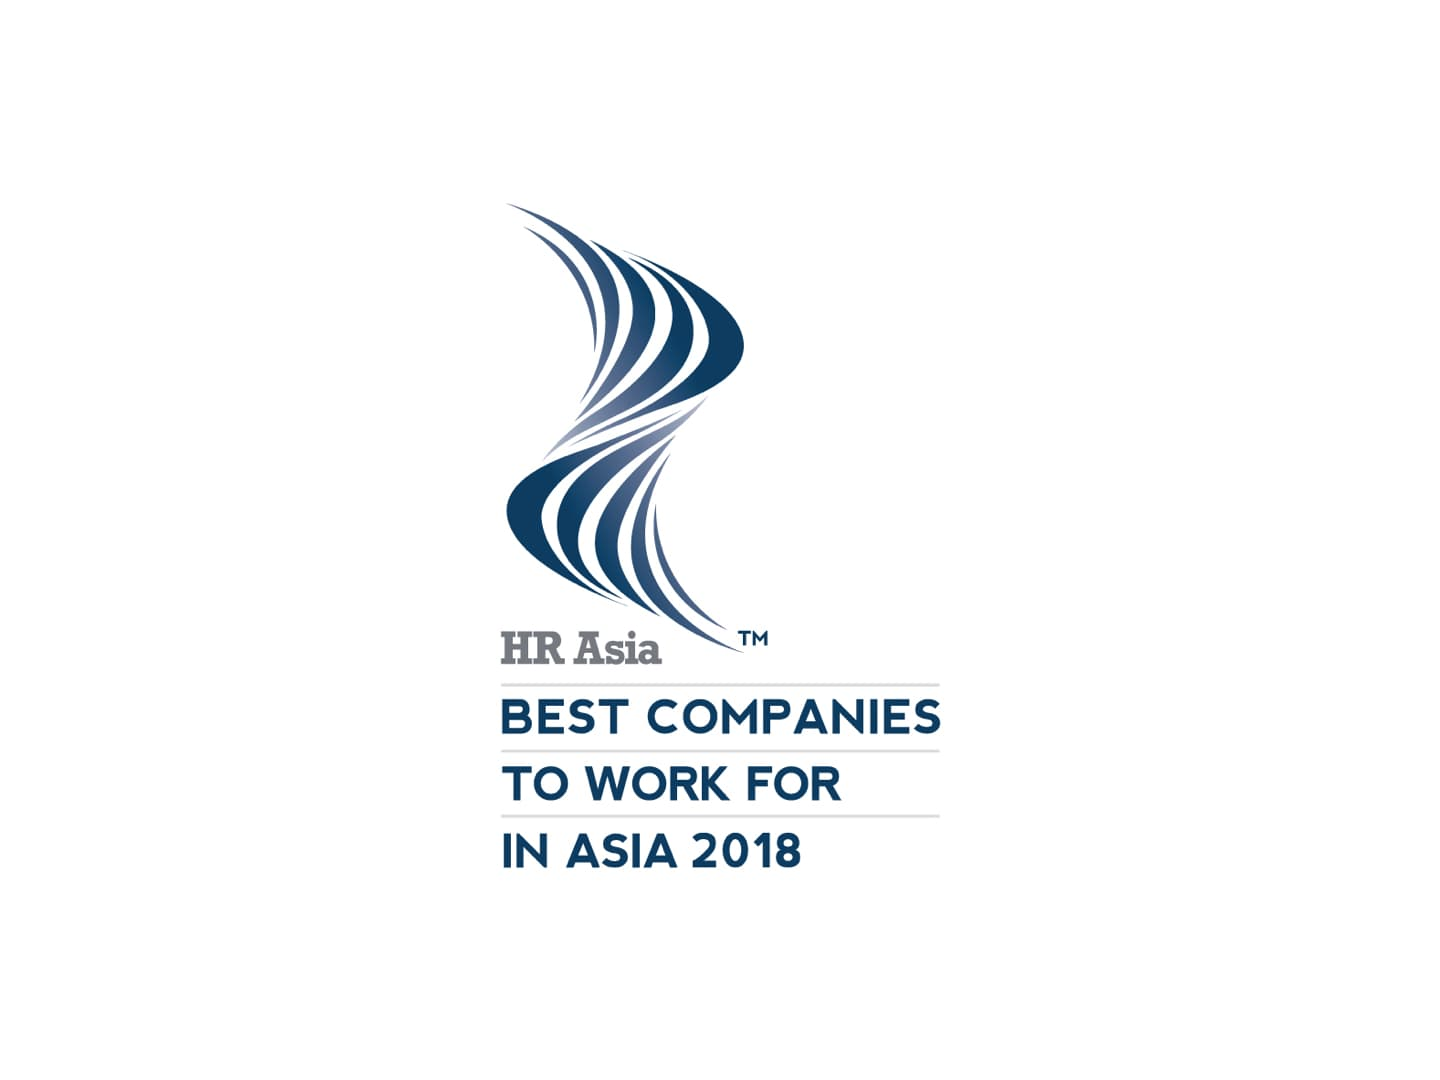 2018 Asia best companies to work